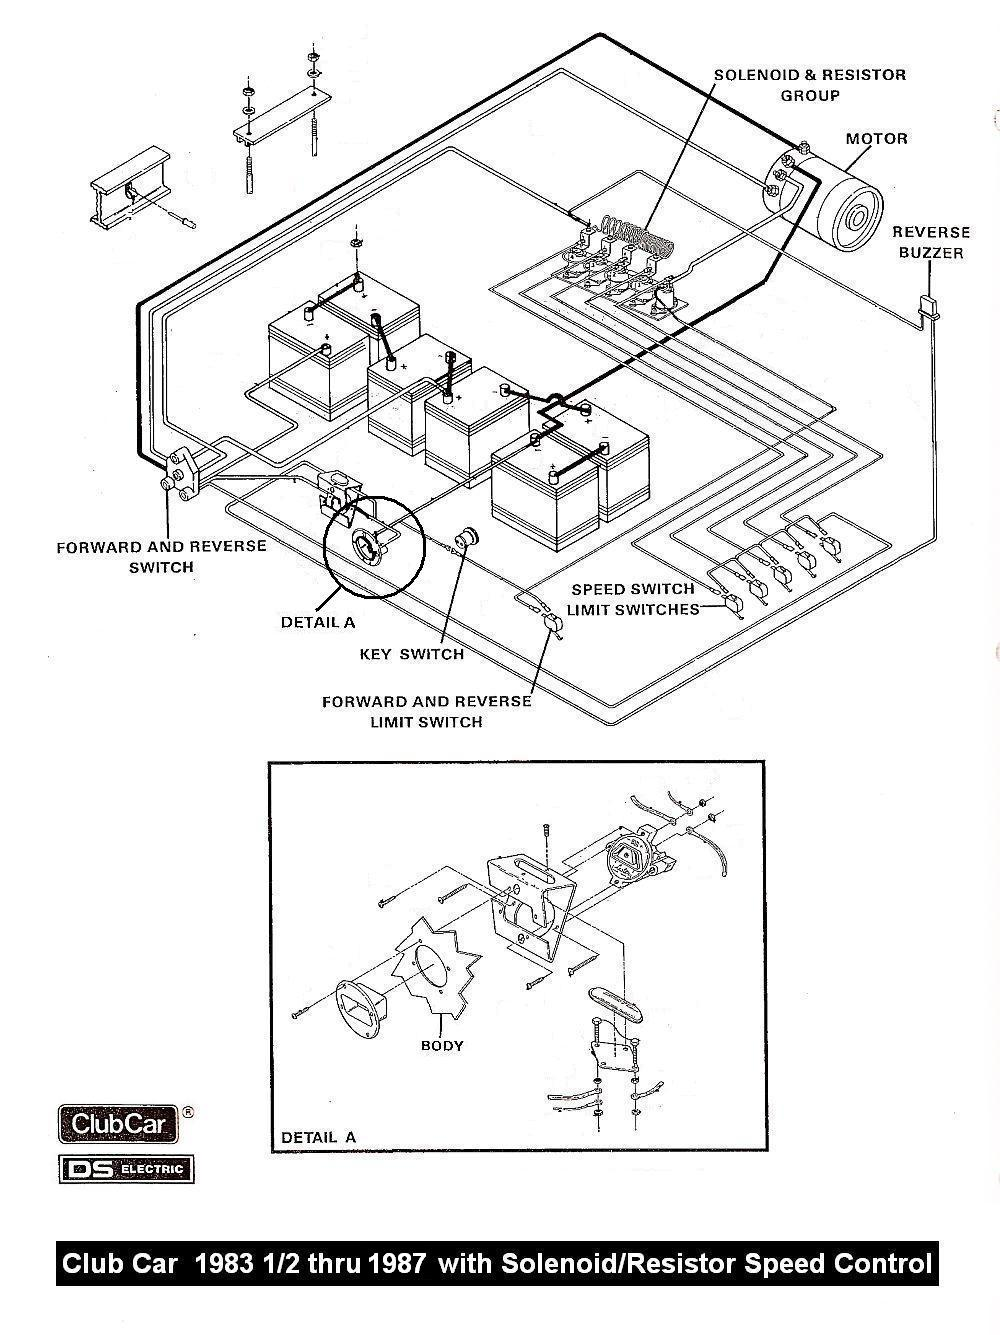 diagram] 48v club car schematic diagram full version hd quality schematic  diagram - lost-diagram.expertsuniversity.it  diagram database - expertsuniversity.it